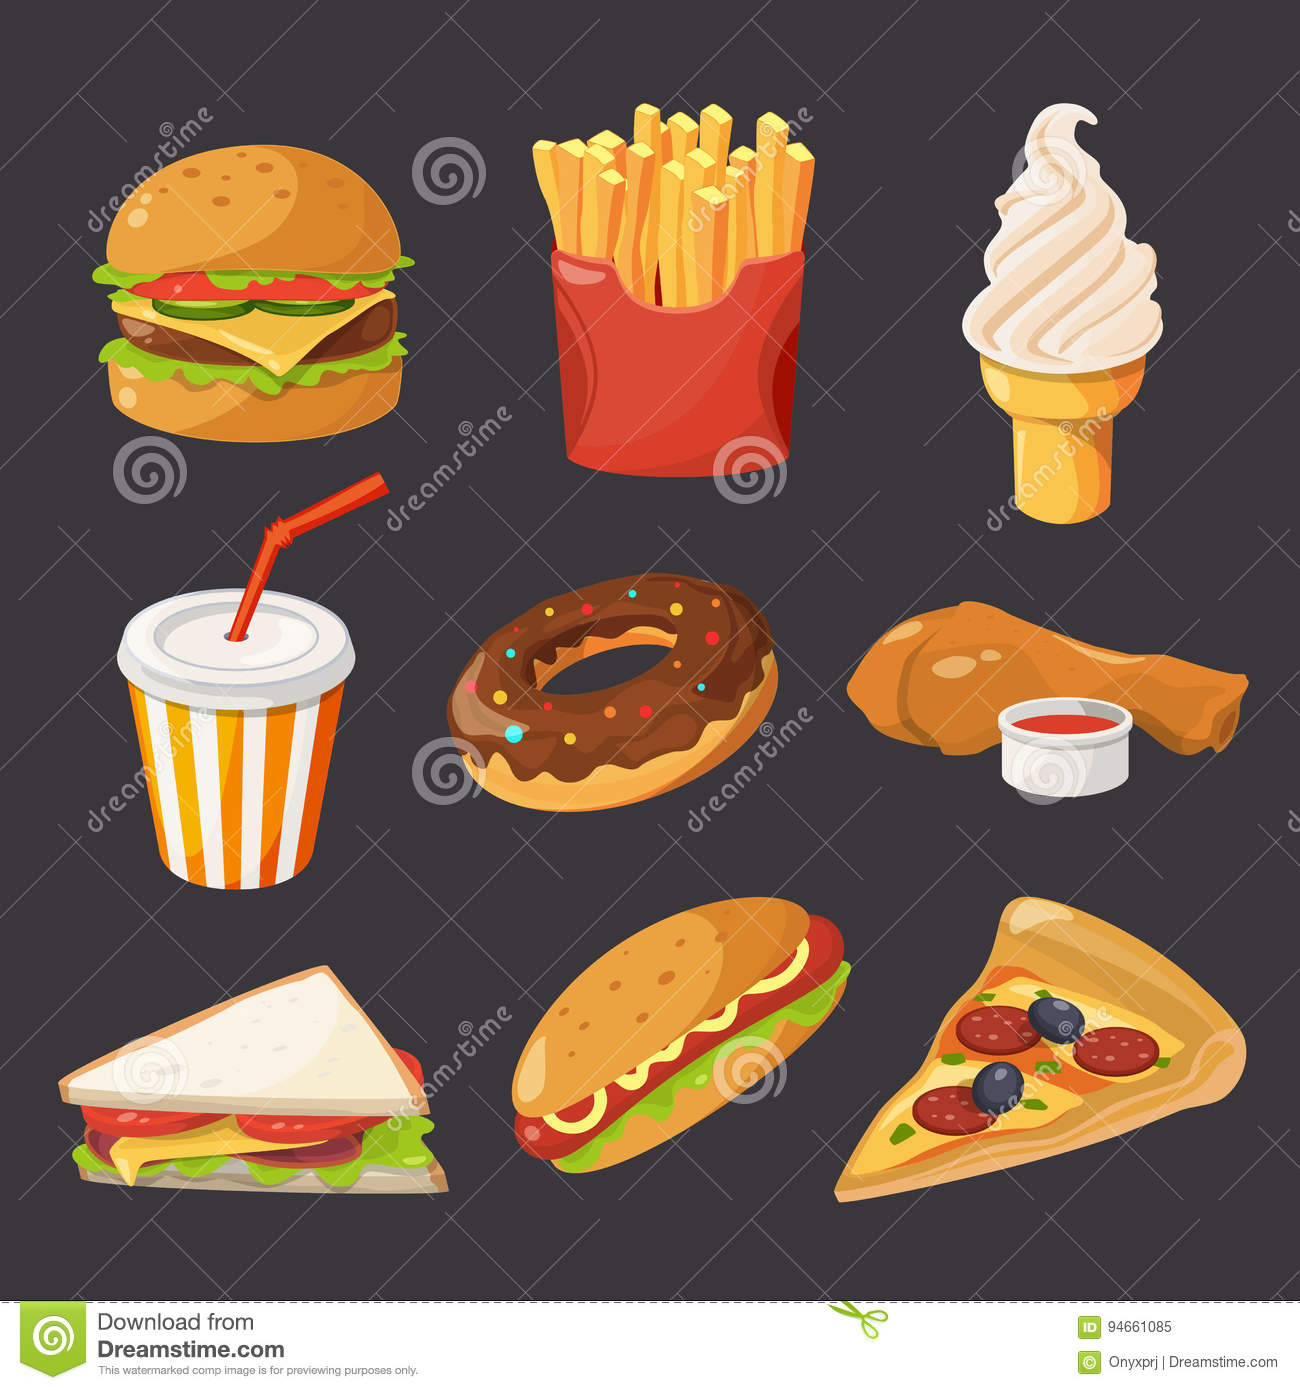 ace6b2720905 Fast Food Illustration In Cartoon Style. Pictures Of Burger, Cold ...